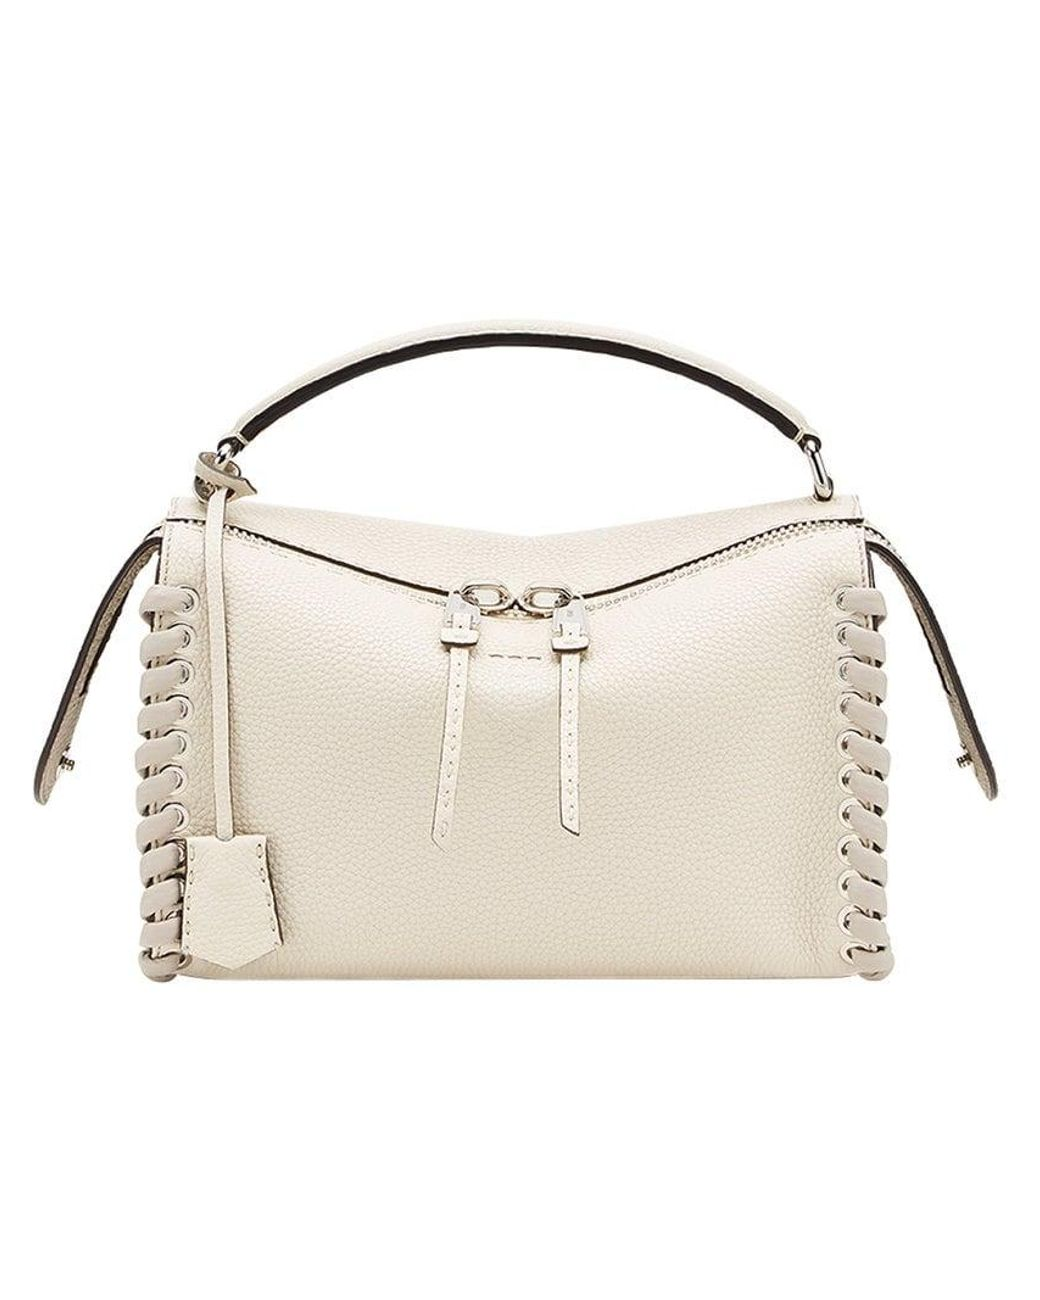 246c03ca6aa Fendi Lei Selleria Tote Bag in Natural - Lyst